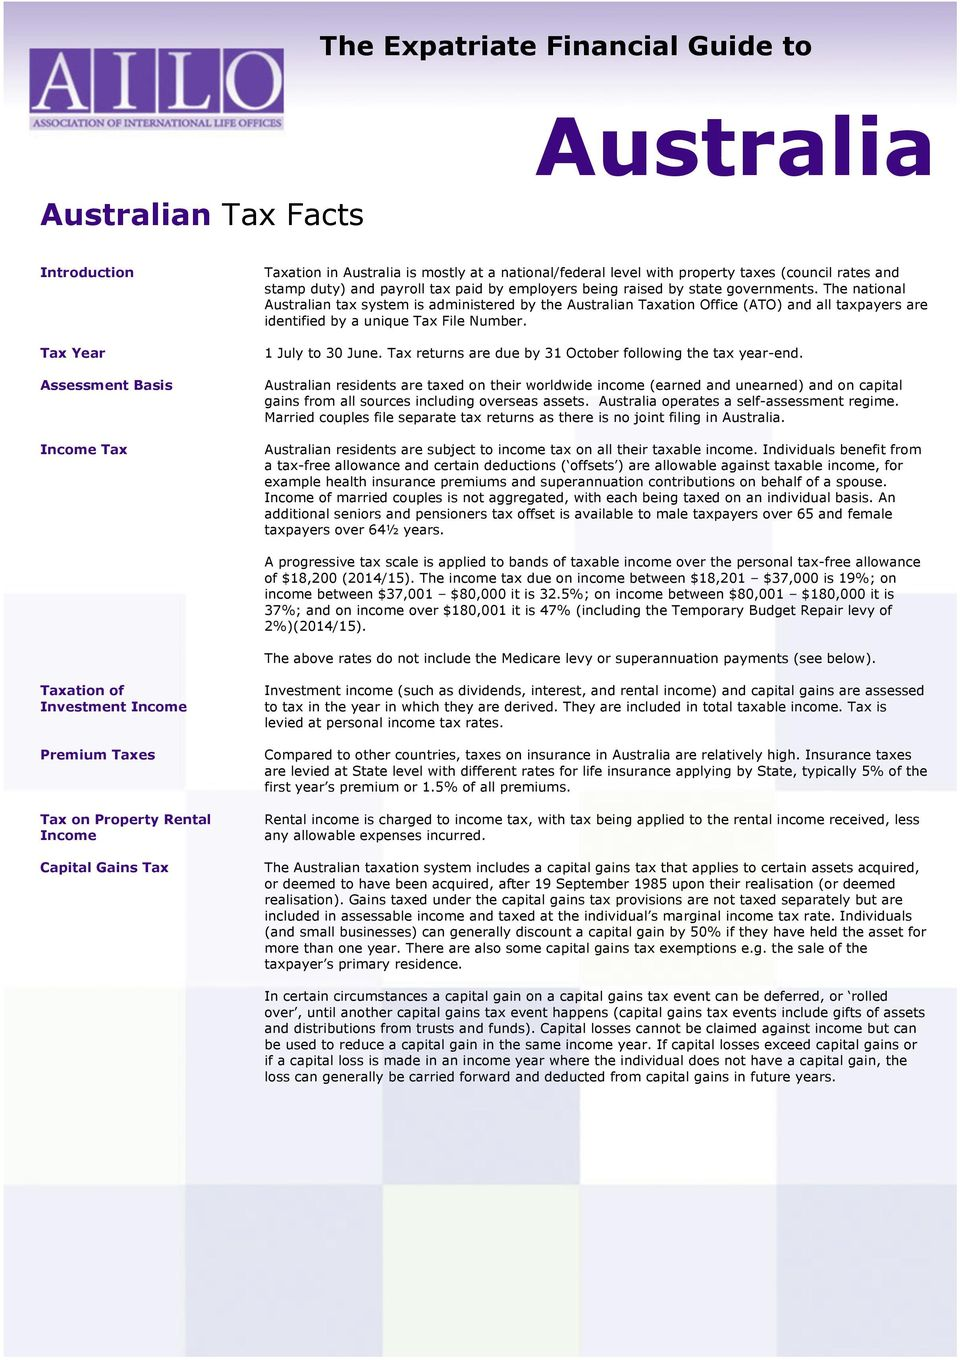 The national Australian tax system is administered by the Australian Taxation Office (ATO) and all taxpayers are identified by a unique Tax File Number. 1 July to 30 June.